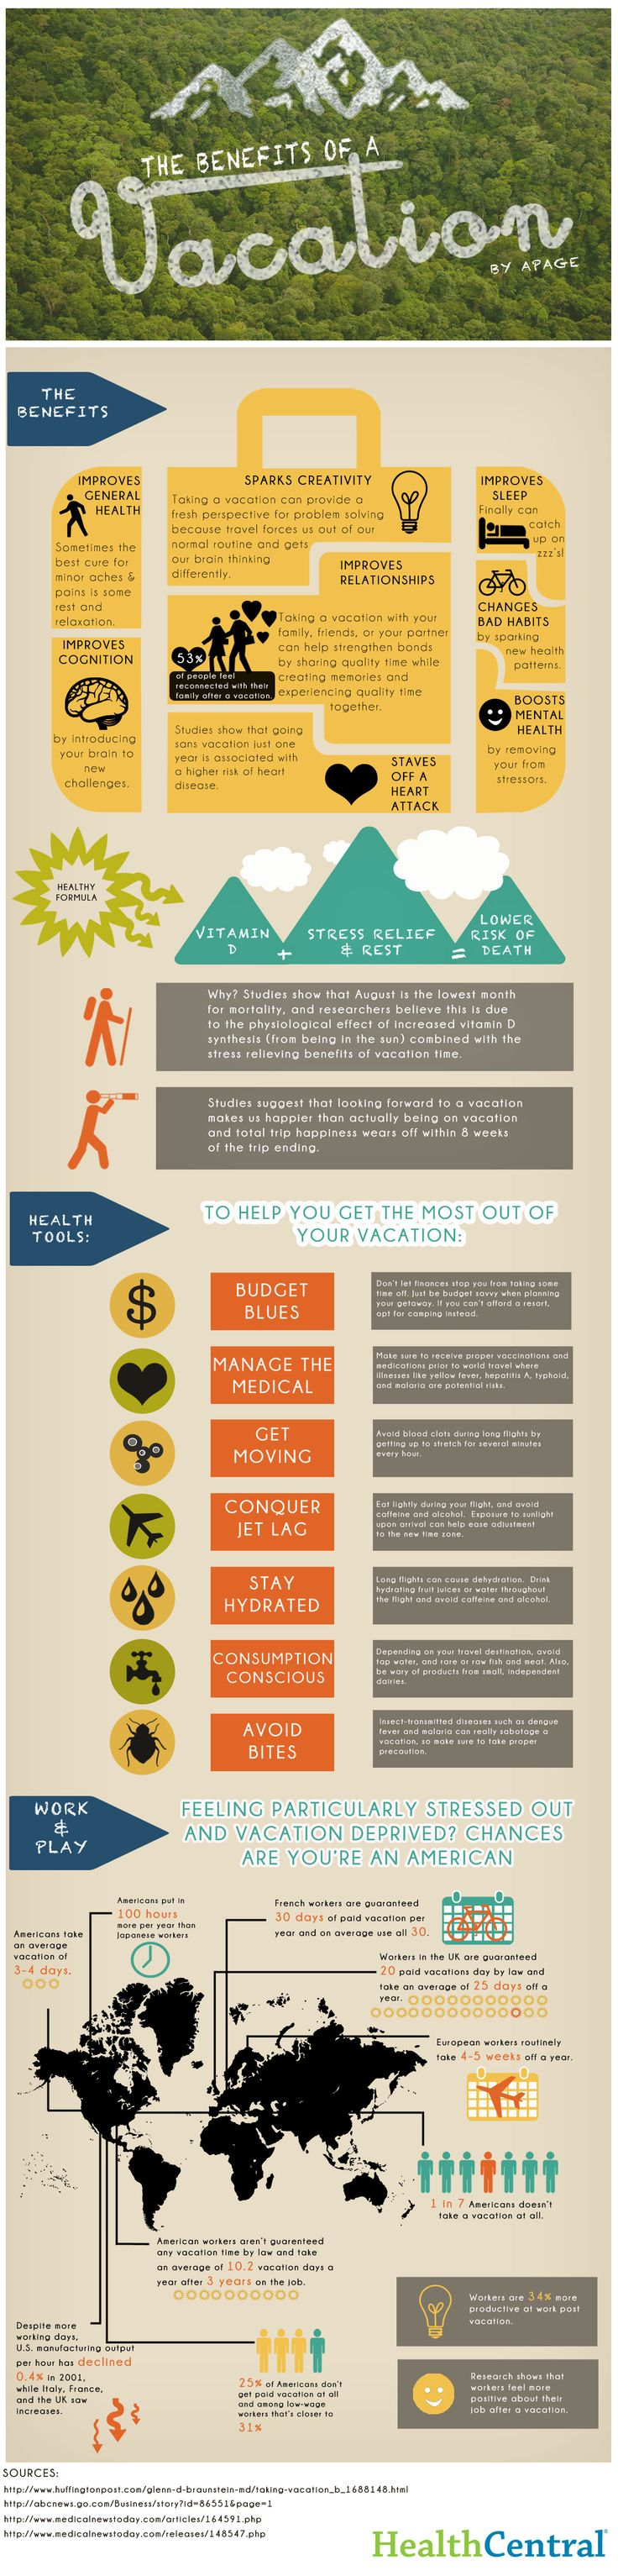 The Benefits of a Vacation @ Pinfographics